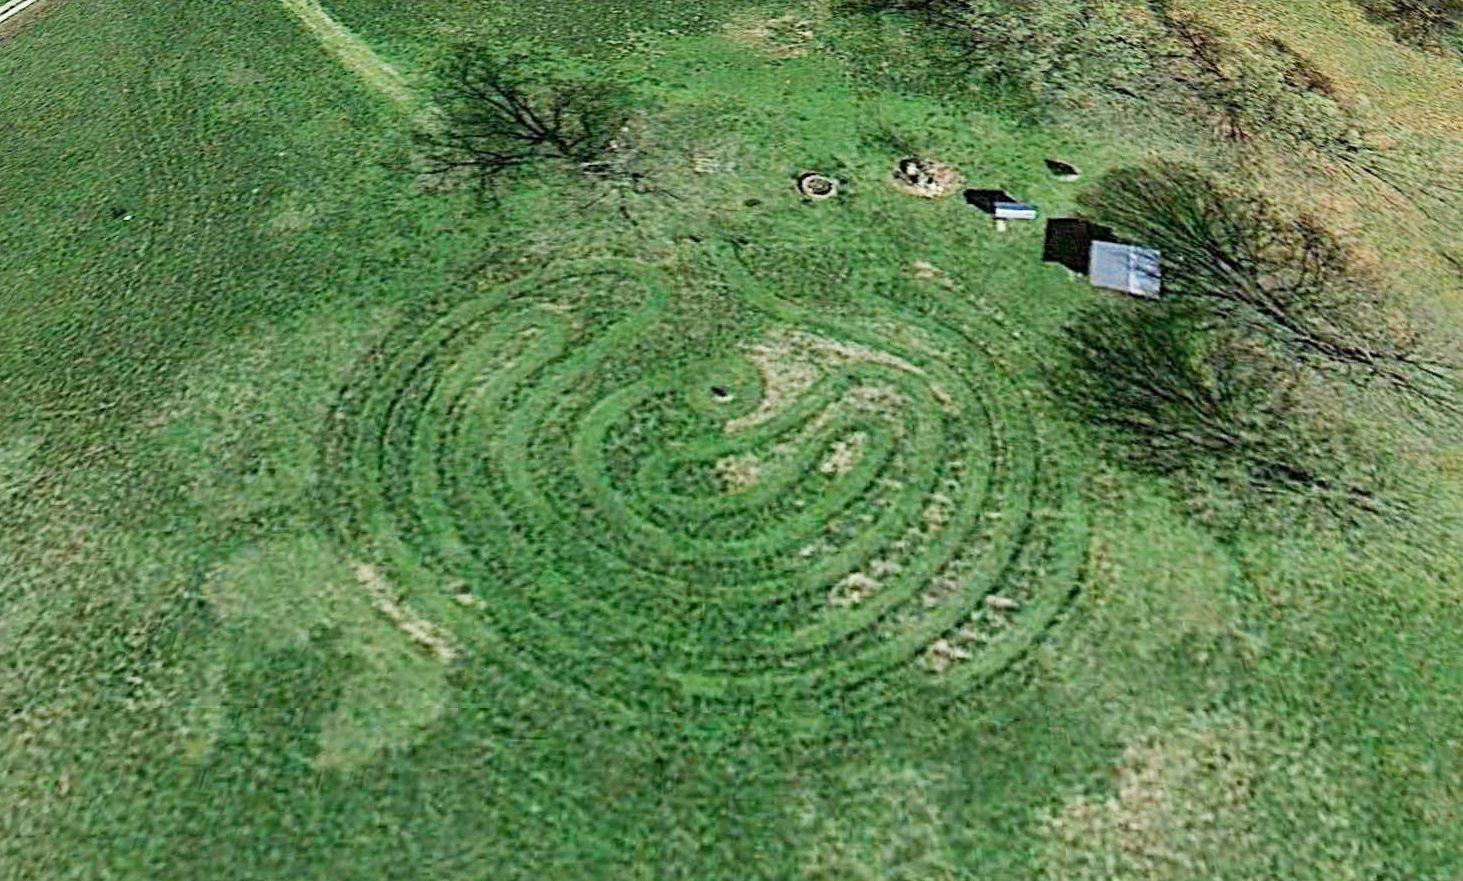 rita and leo ward's turf# labyrinth, near #campbogglewomp, Gartengerate ideen